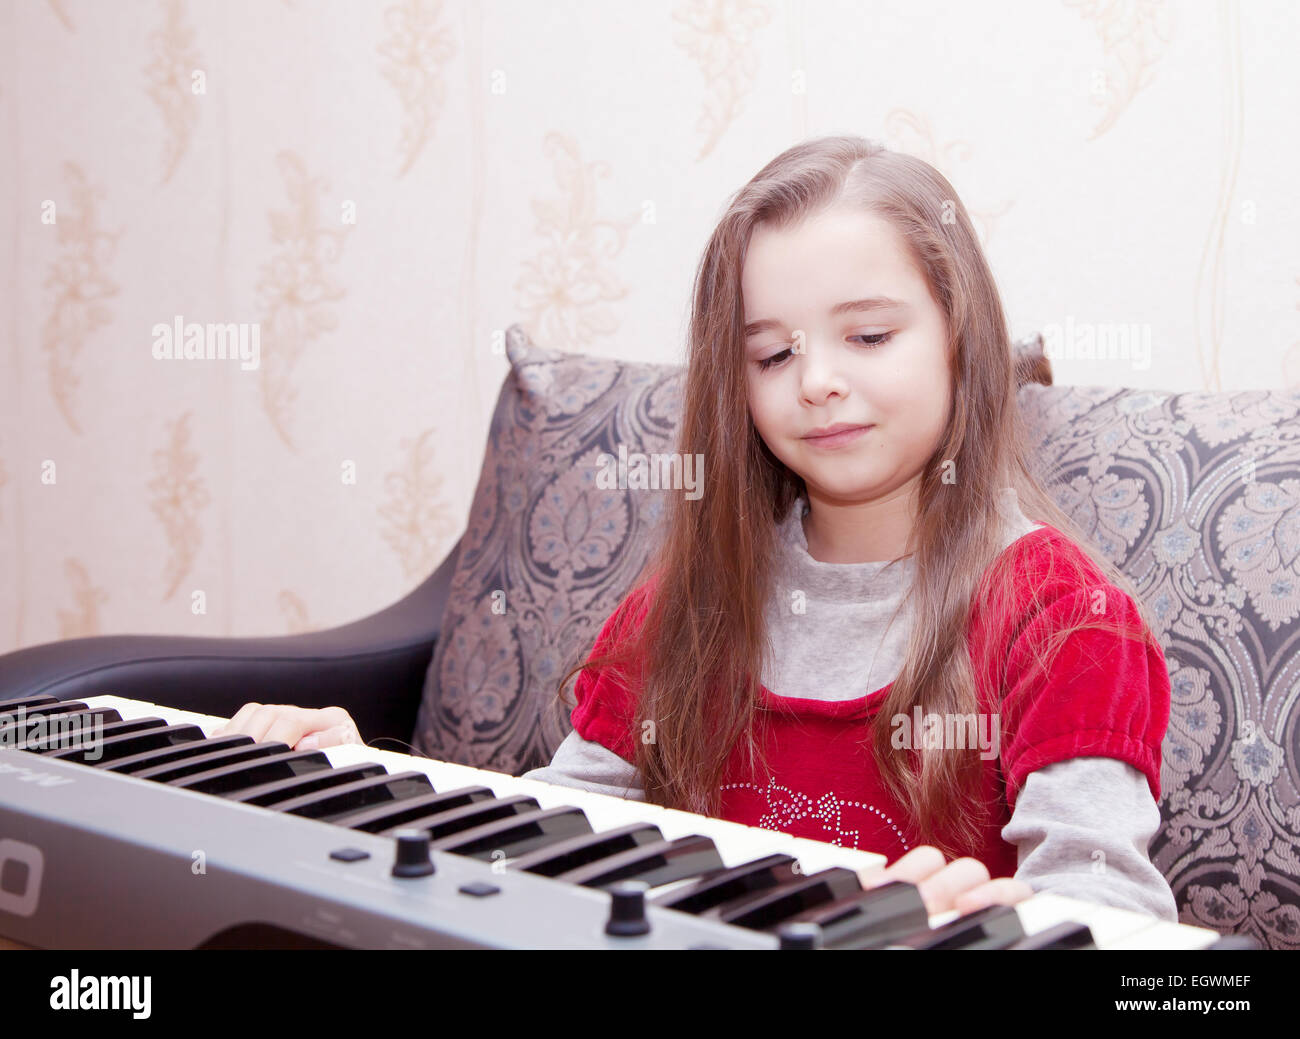 girl playing on a synthesizer - Stock Image